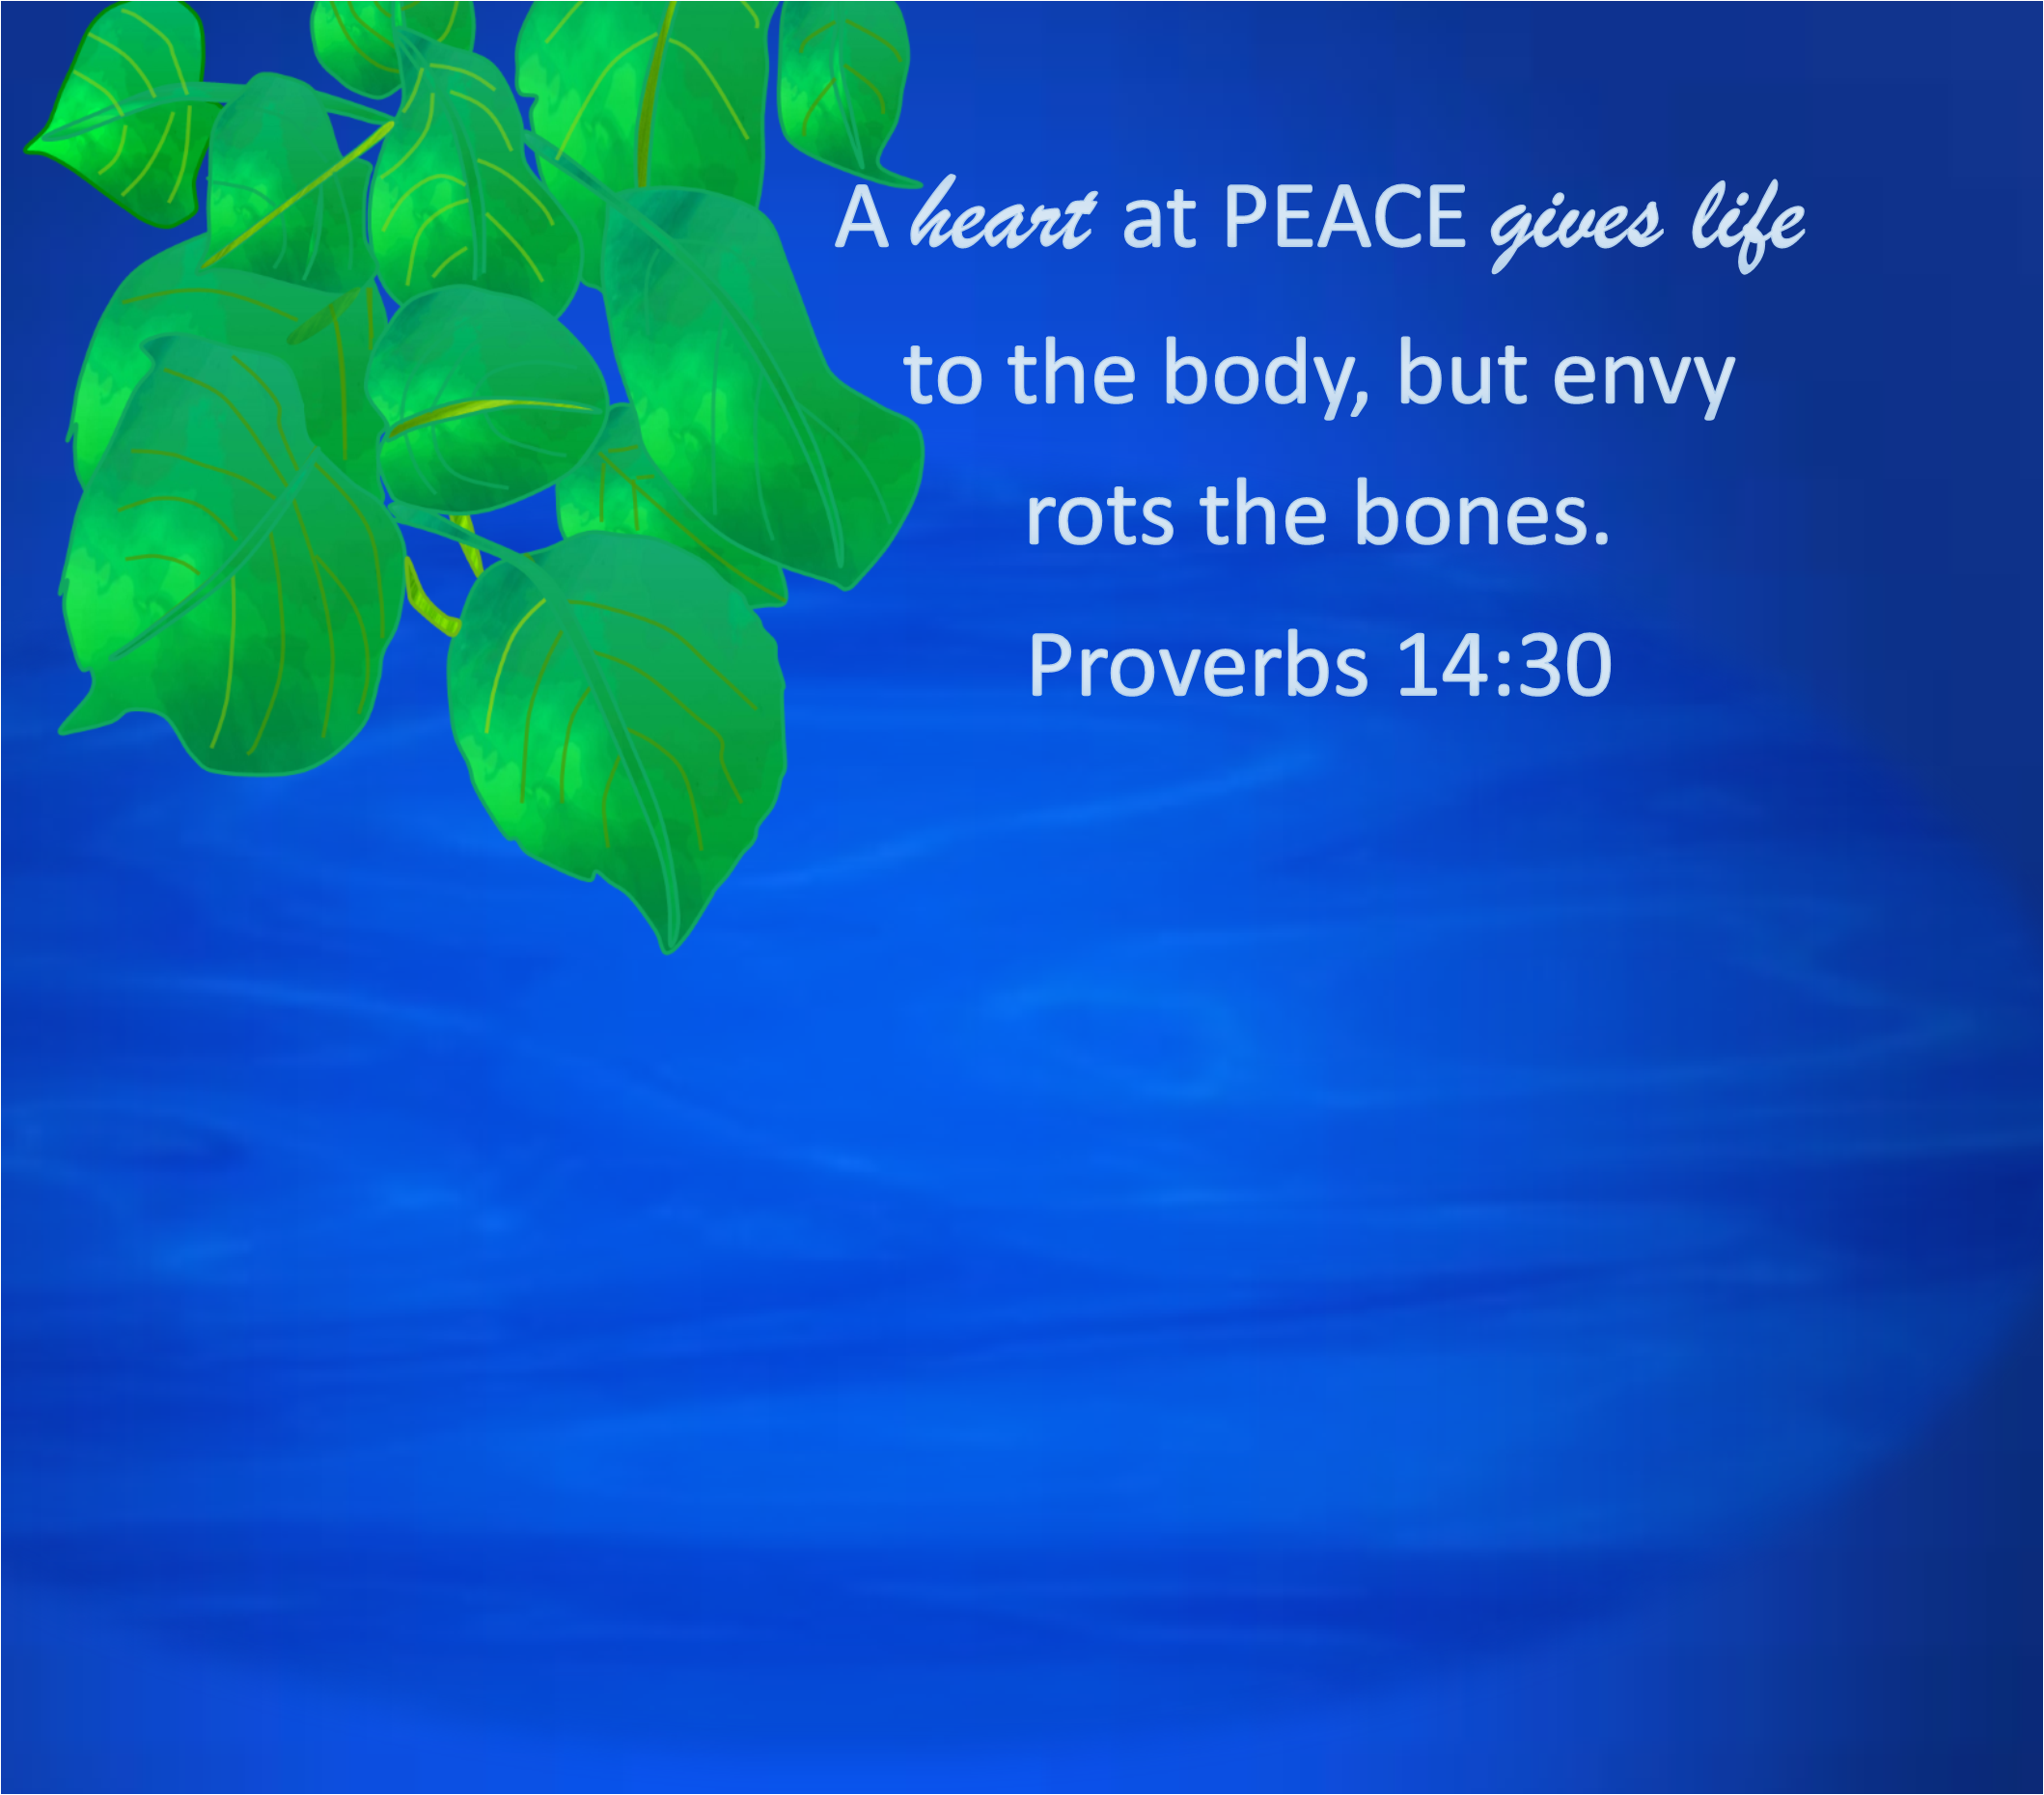 A heart at peace gives life to the body Proverbs 14:30 #peace #Shalom #calm #water #heart